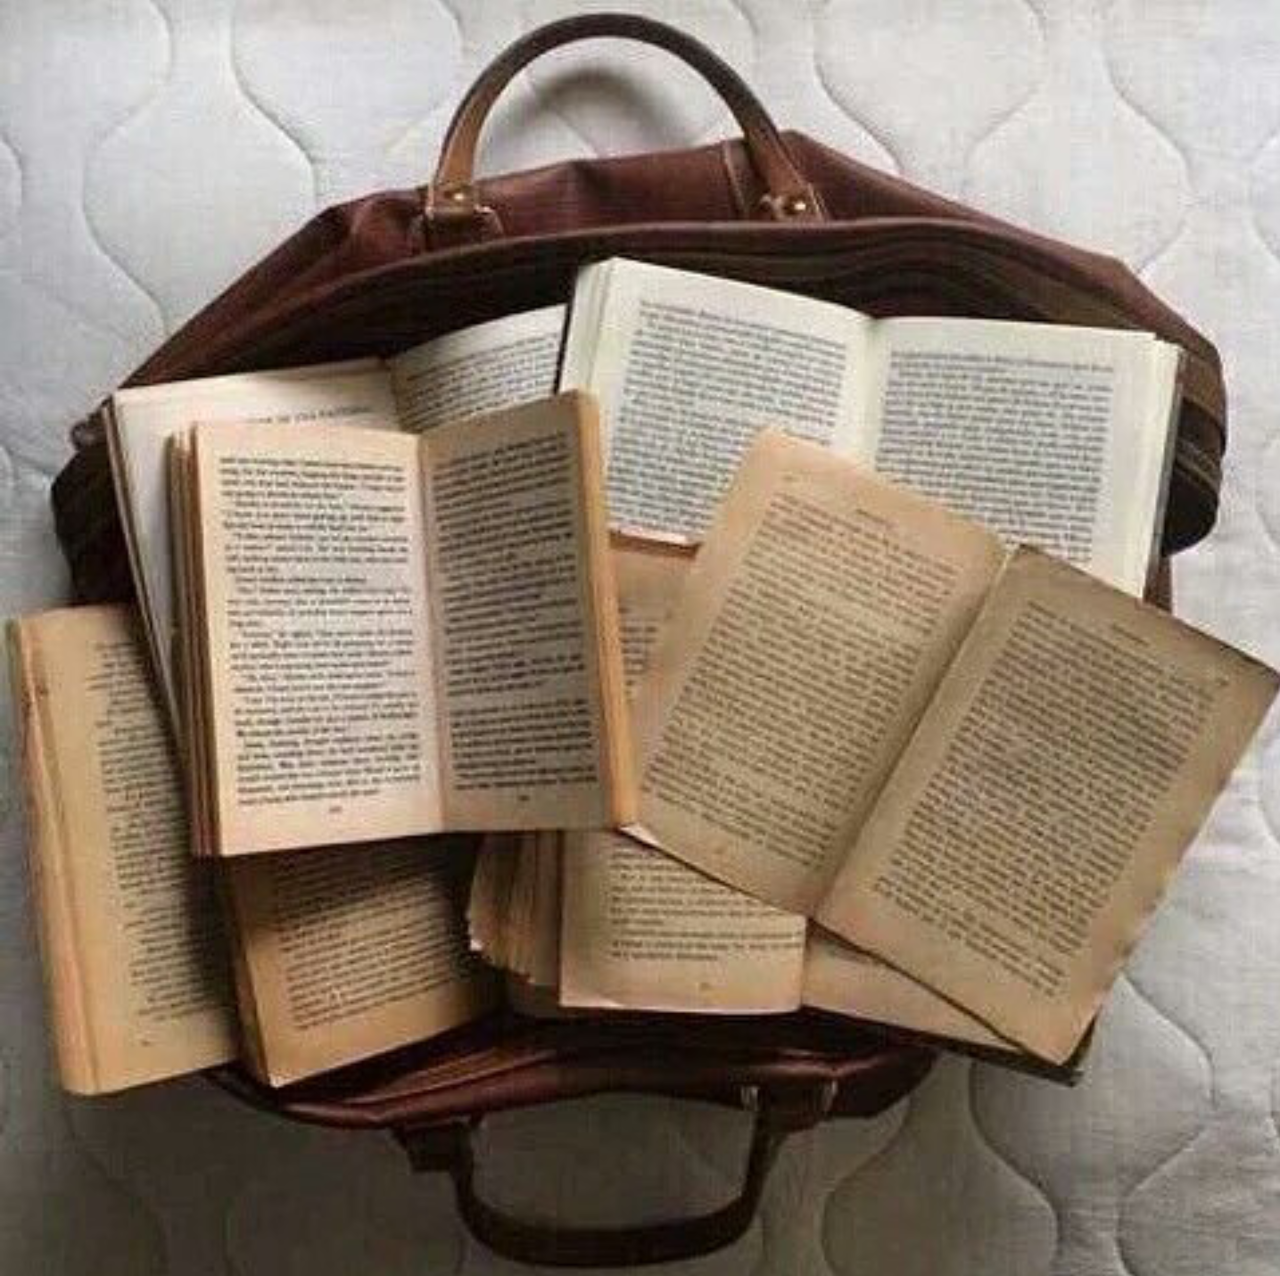 Image About Vintage In Books By Black Storm On We Heart It